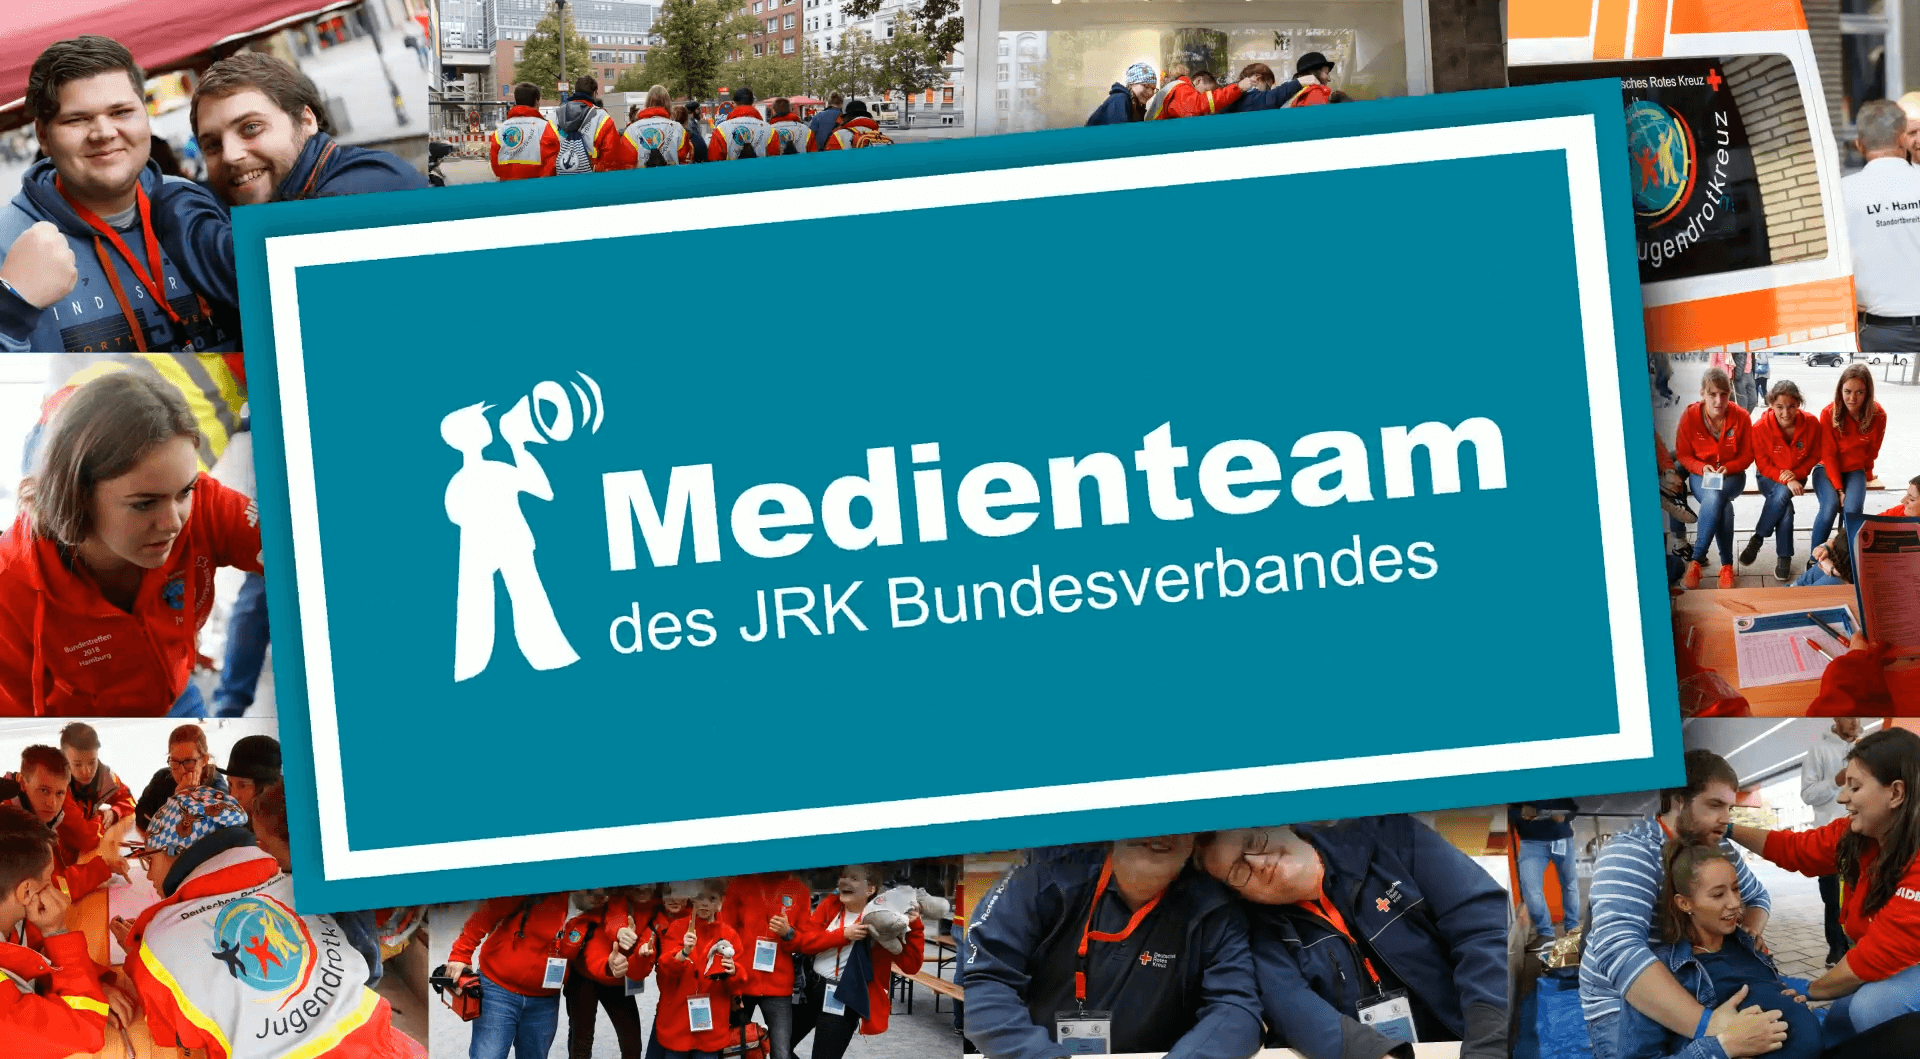 Jugendrotkreuz Medienteam des Bundesverbandes